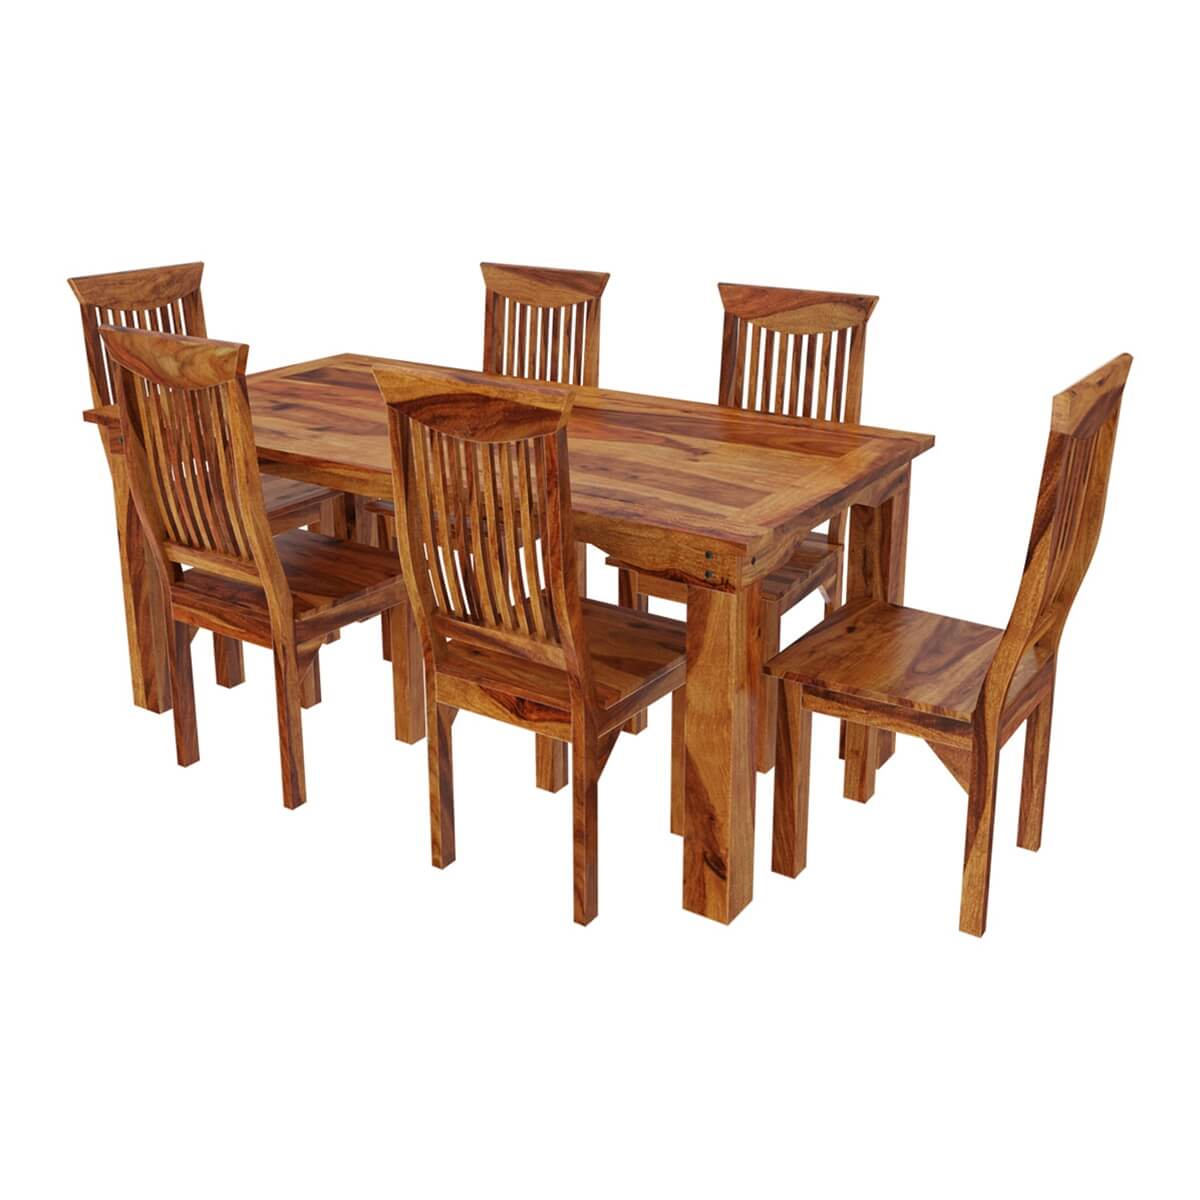 Idaho modern rustic solid wood dining table chair set for Wood dining table set